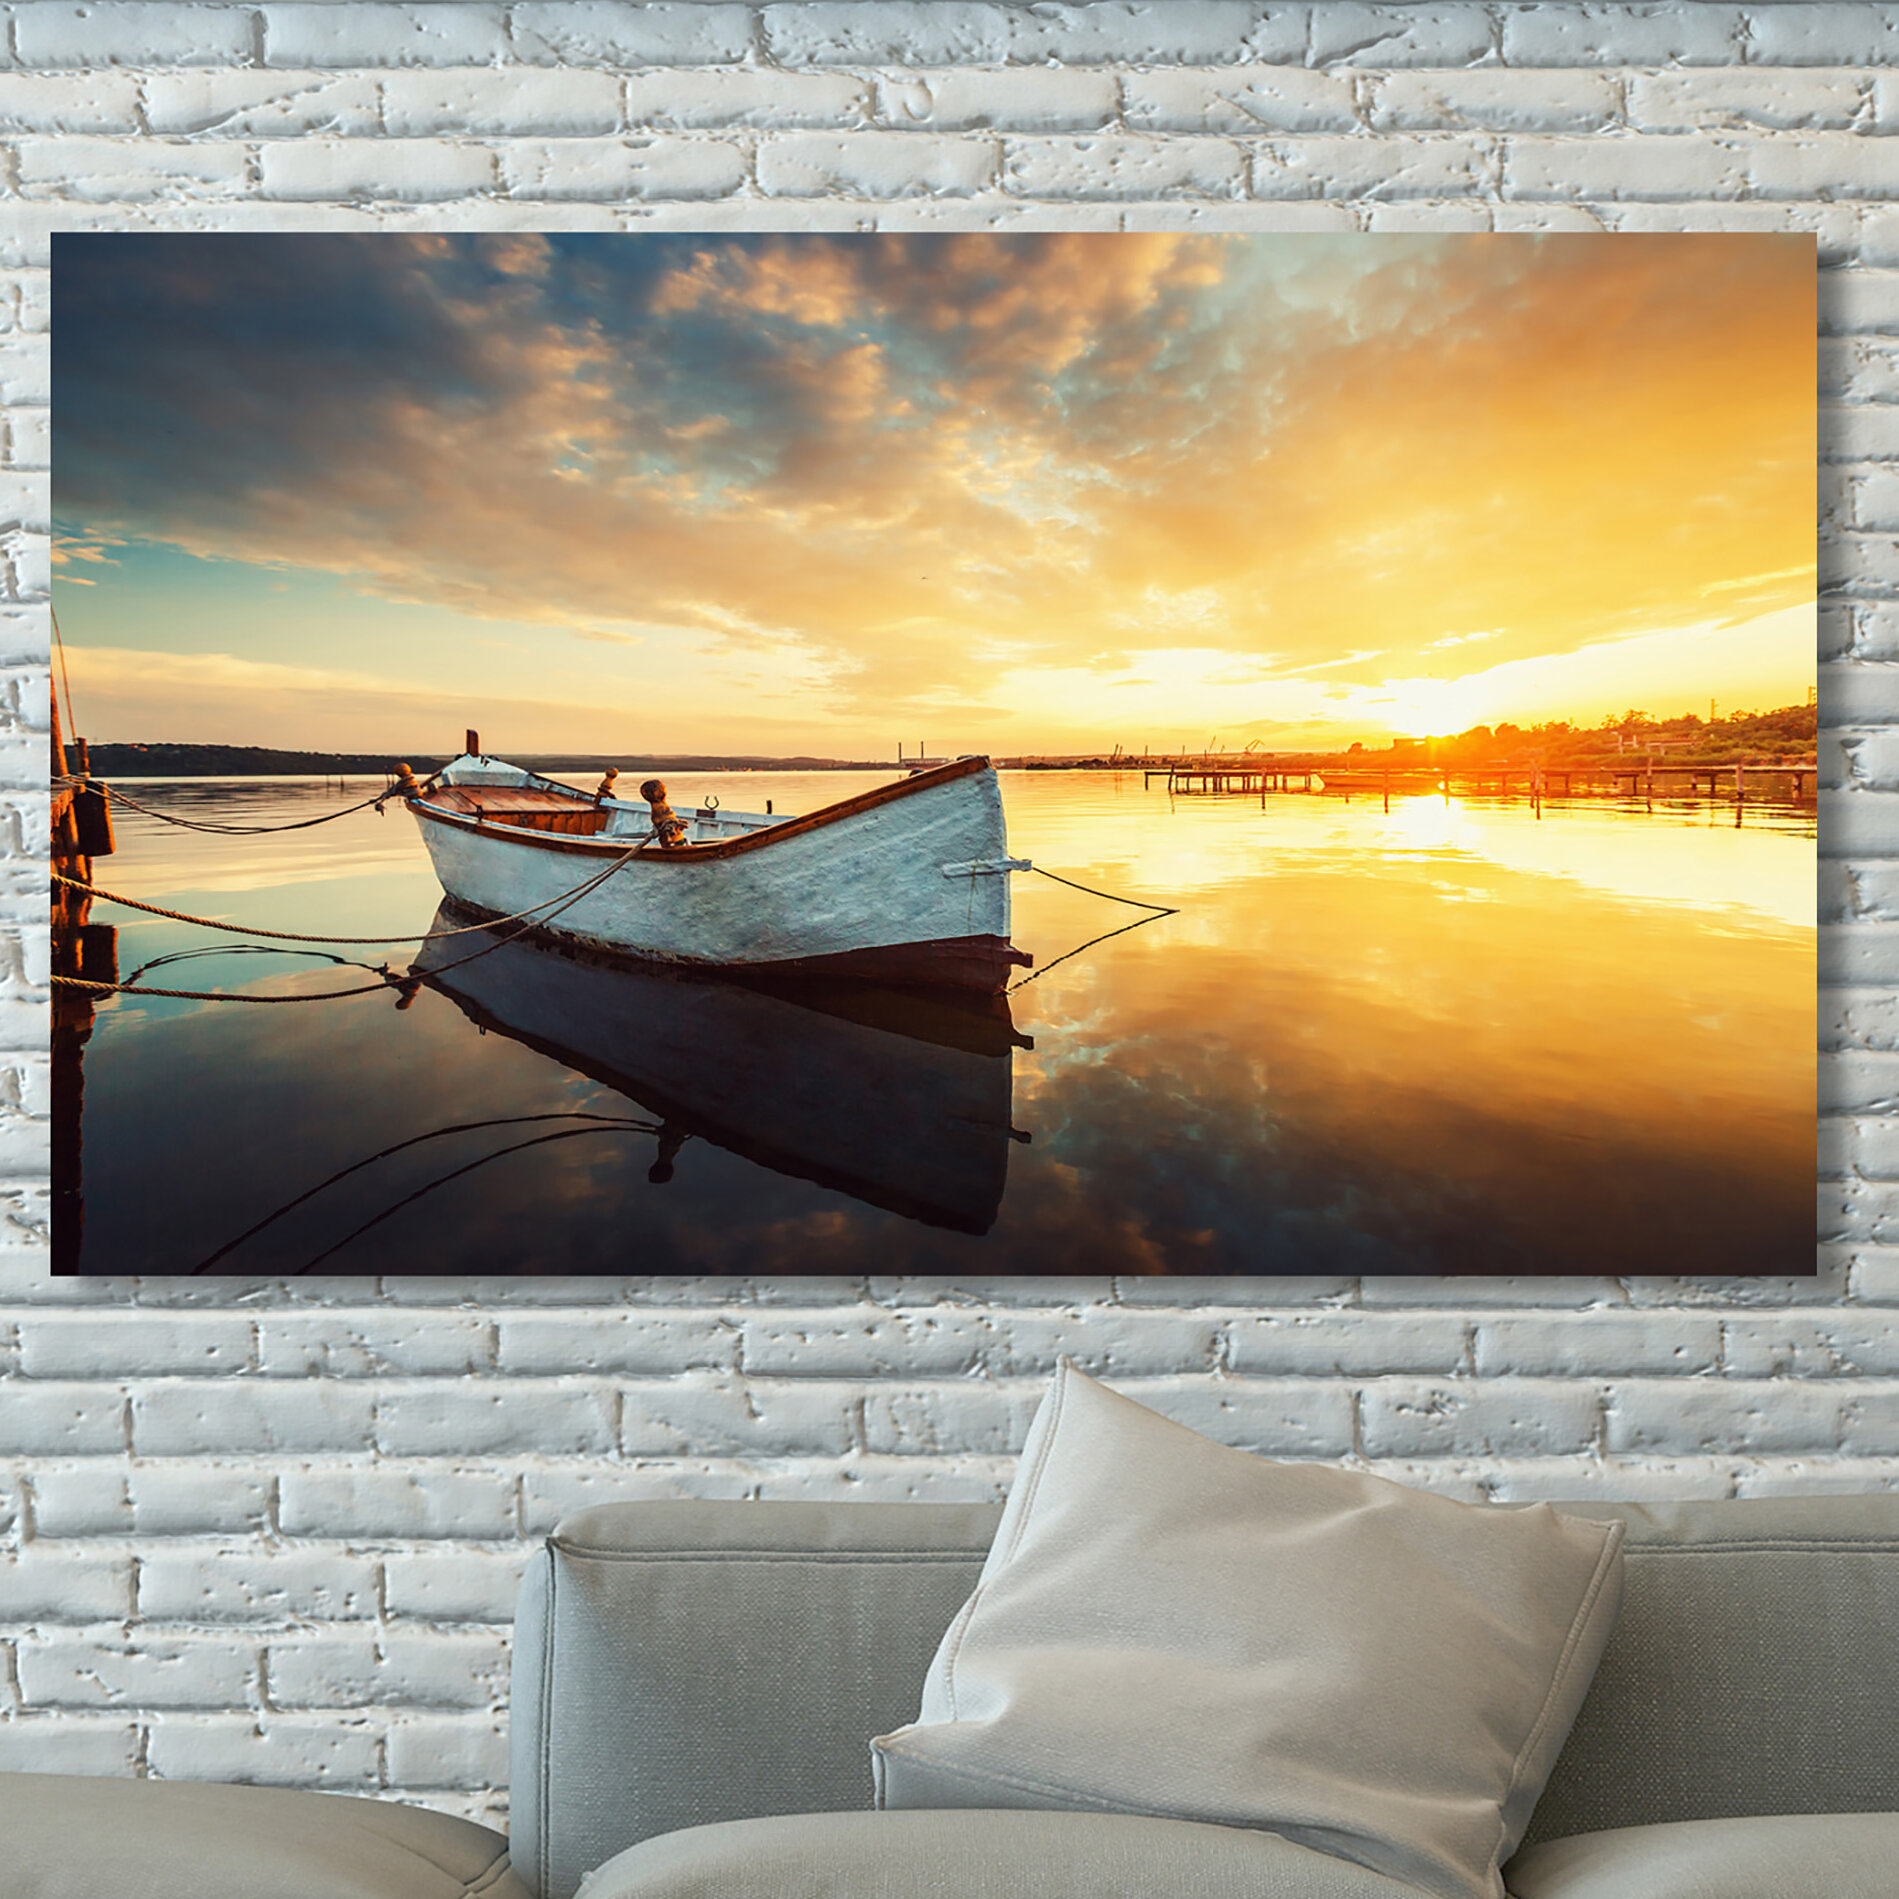 PicturePerfectInternational \'Boat on Lake\' Photographic Print on ...